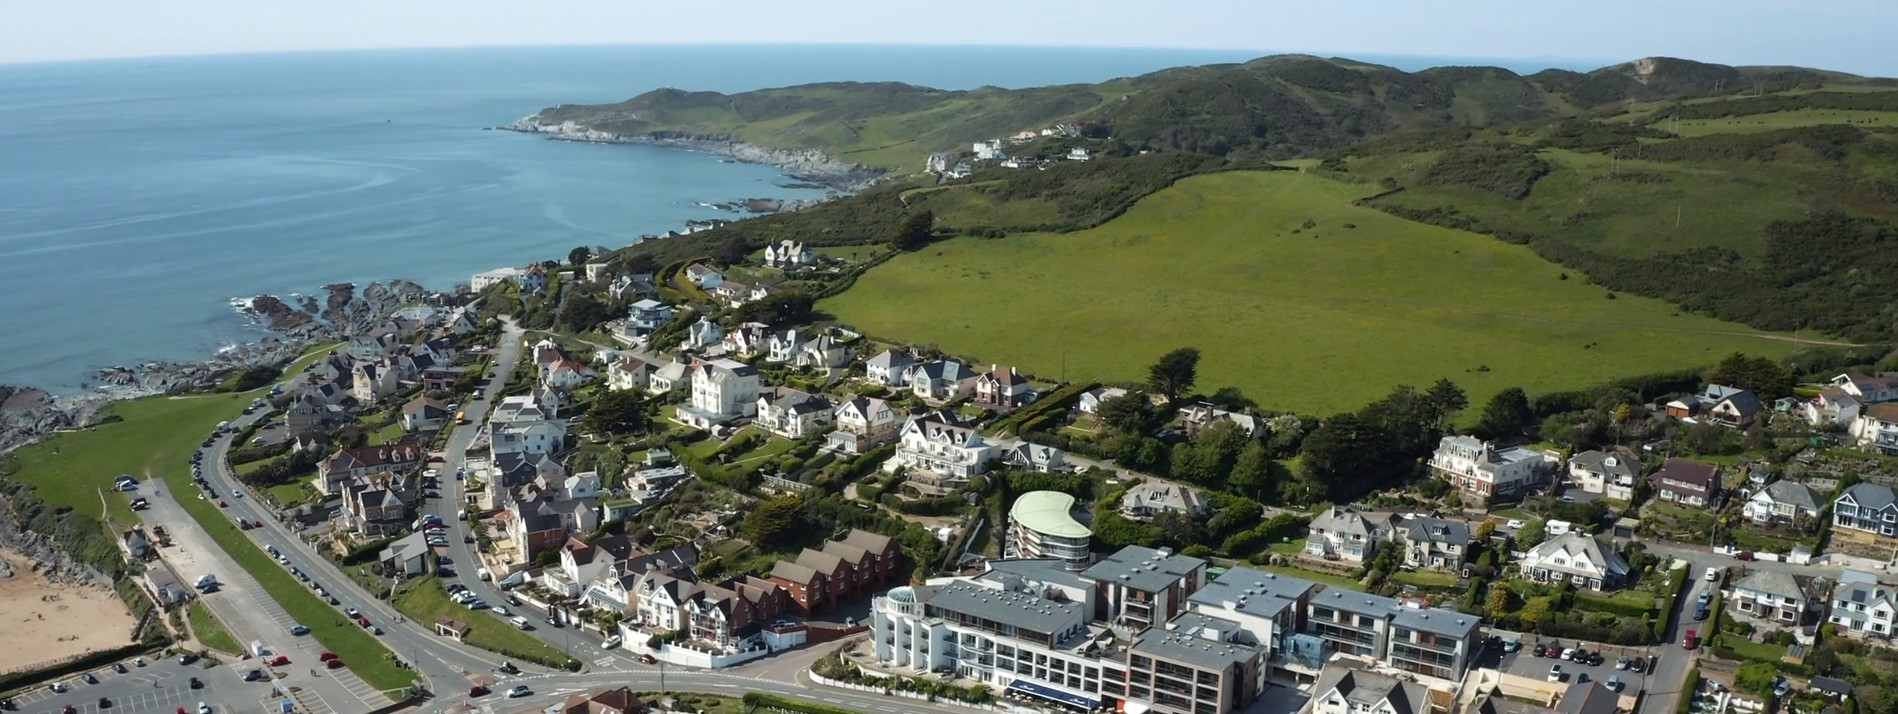 Byron holiday lets in Woolacombe